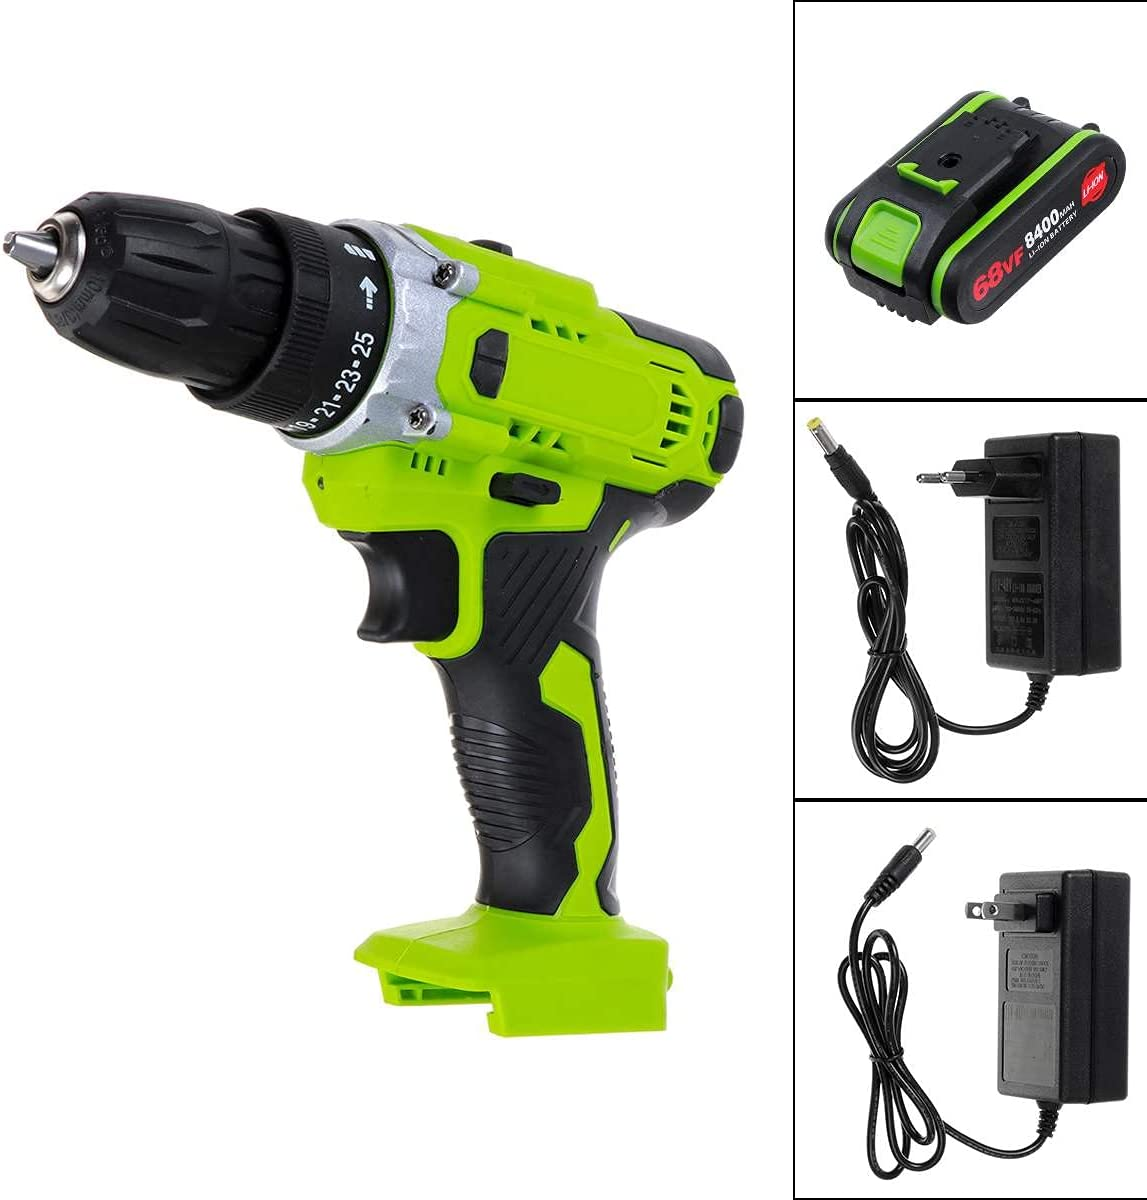 350N.m 2 IN 1 Electric Ranking TOP5 Drill Impact We OFFer at cheap prices Rechargable Screwdr Cordless